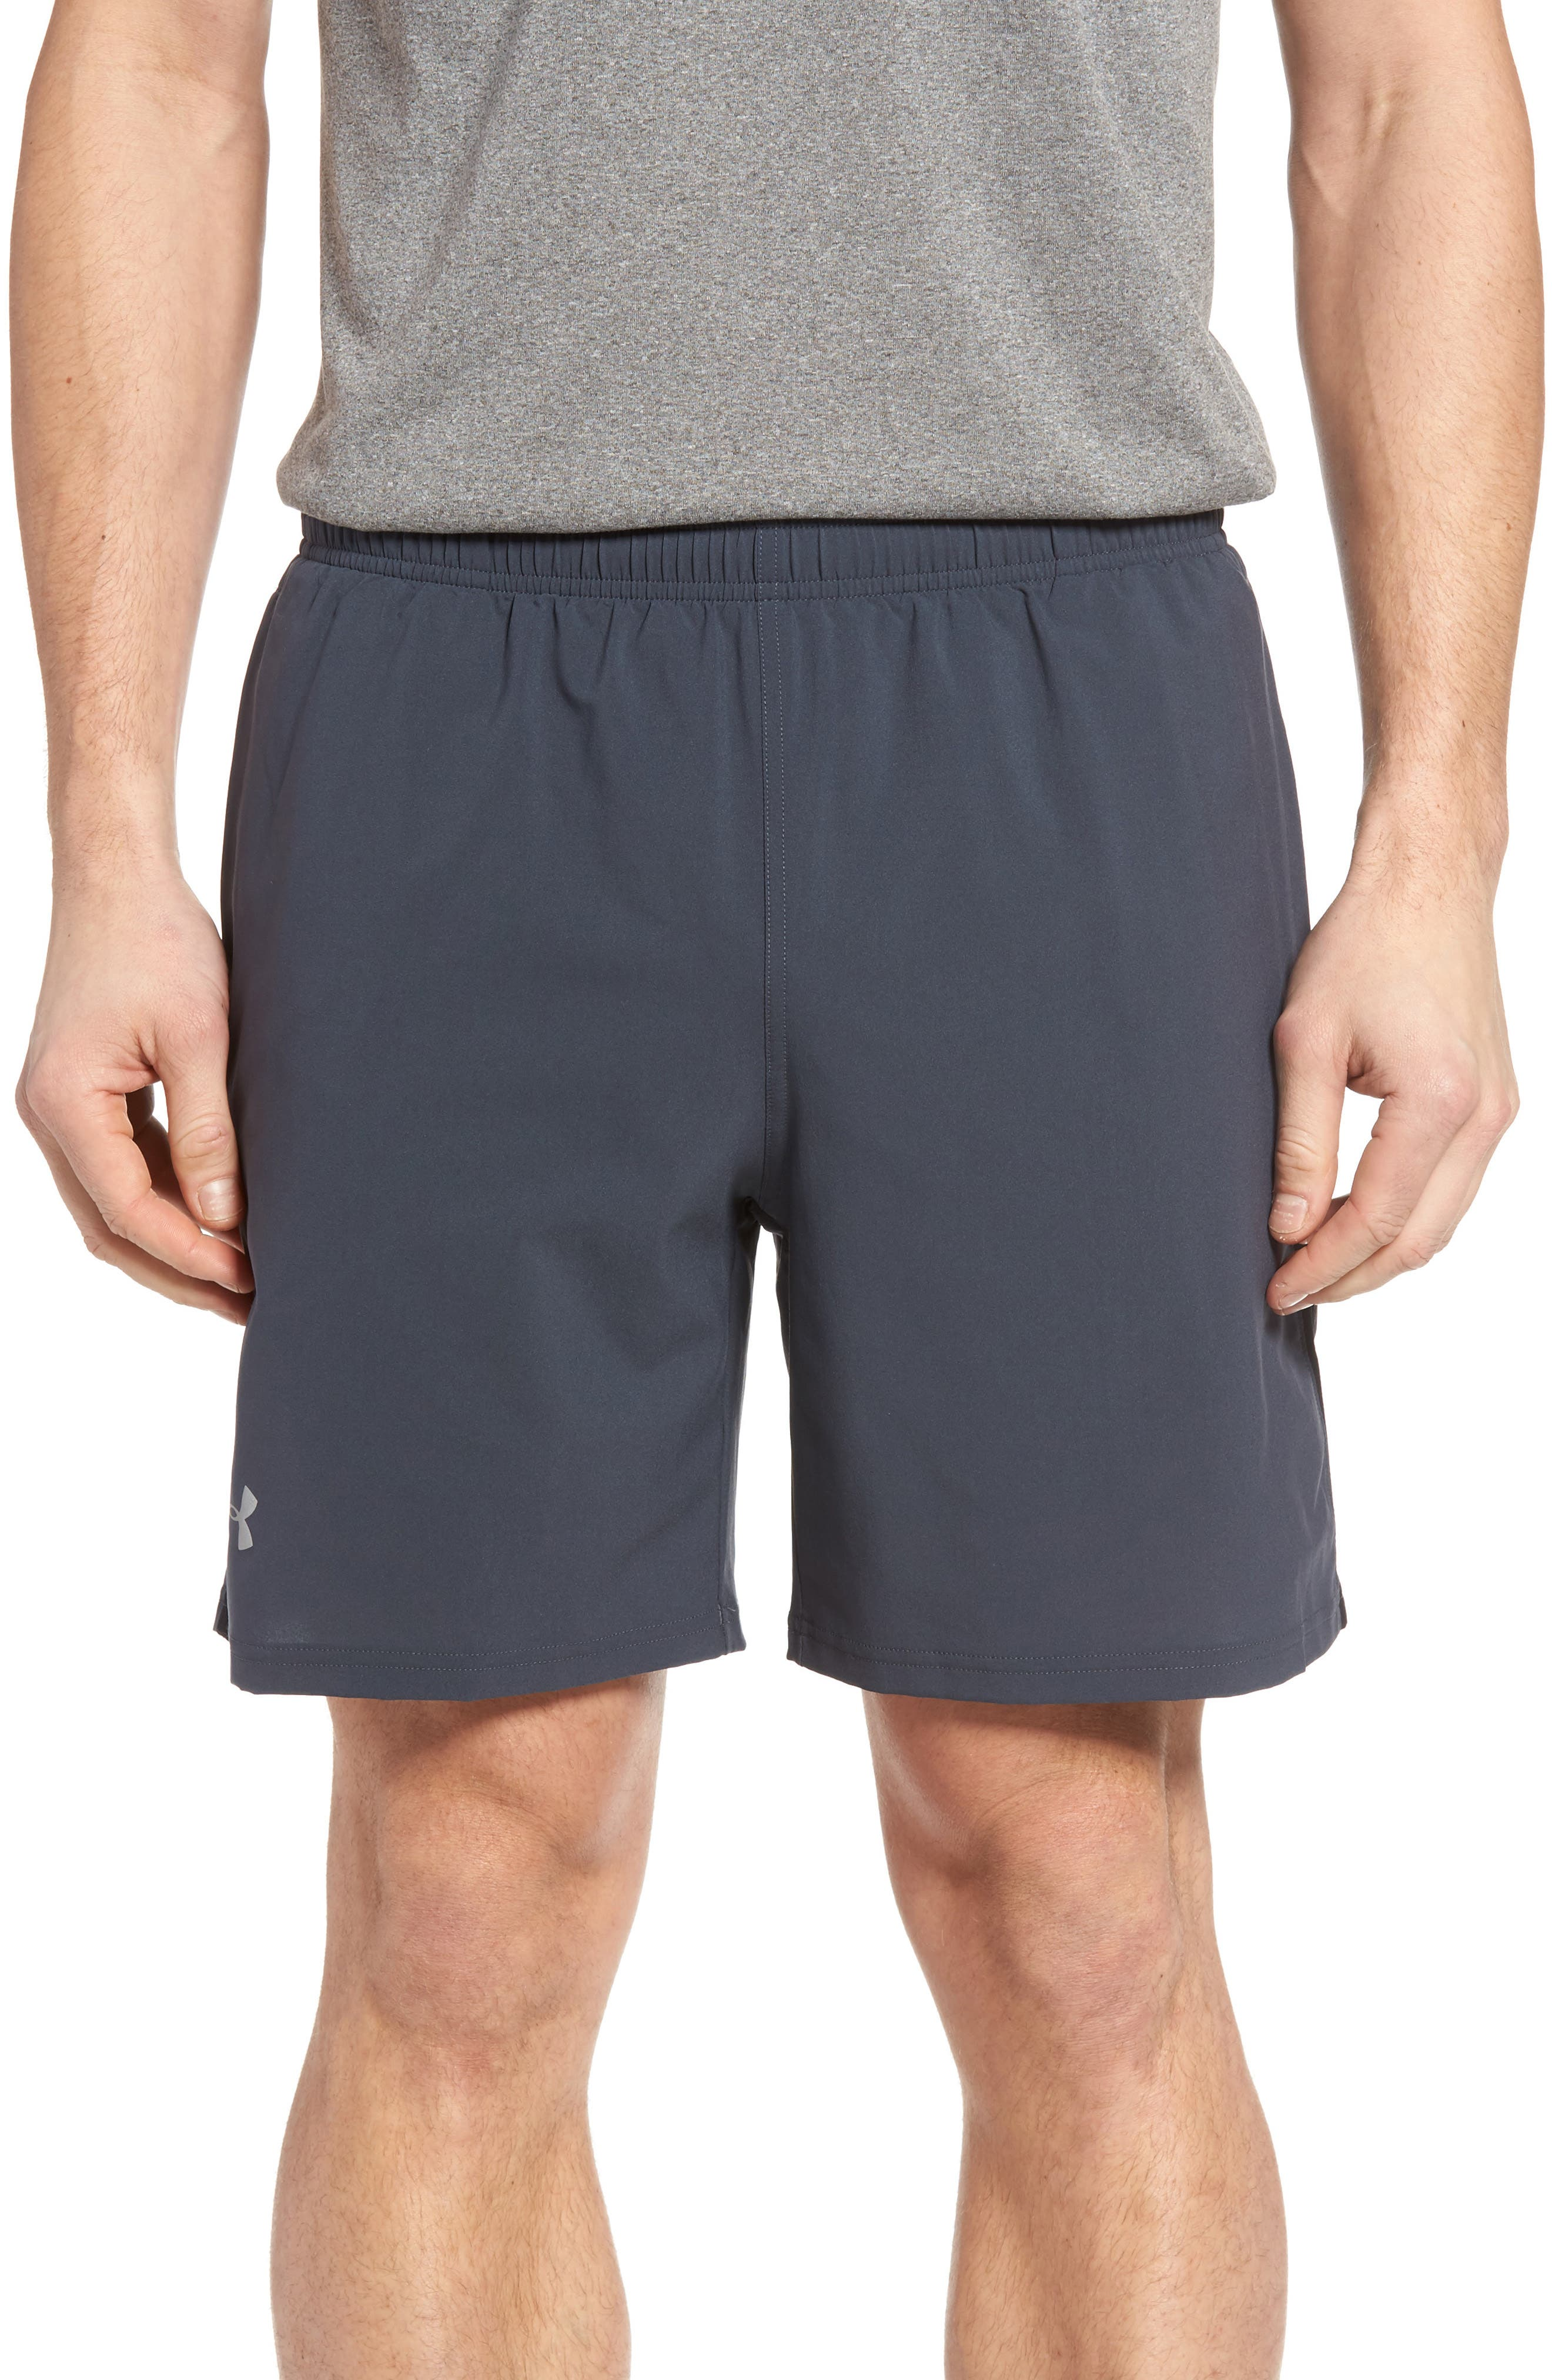 Launch Running Shorts,                         Main,                         color, Stealth Gray